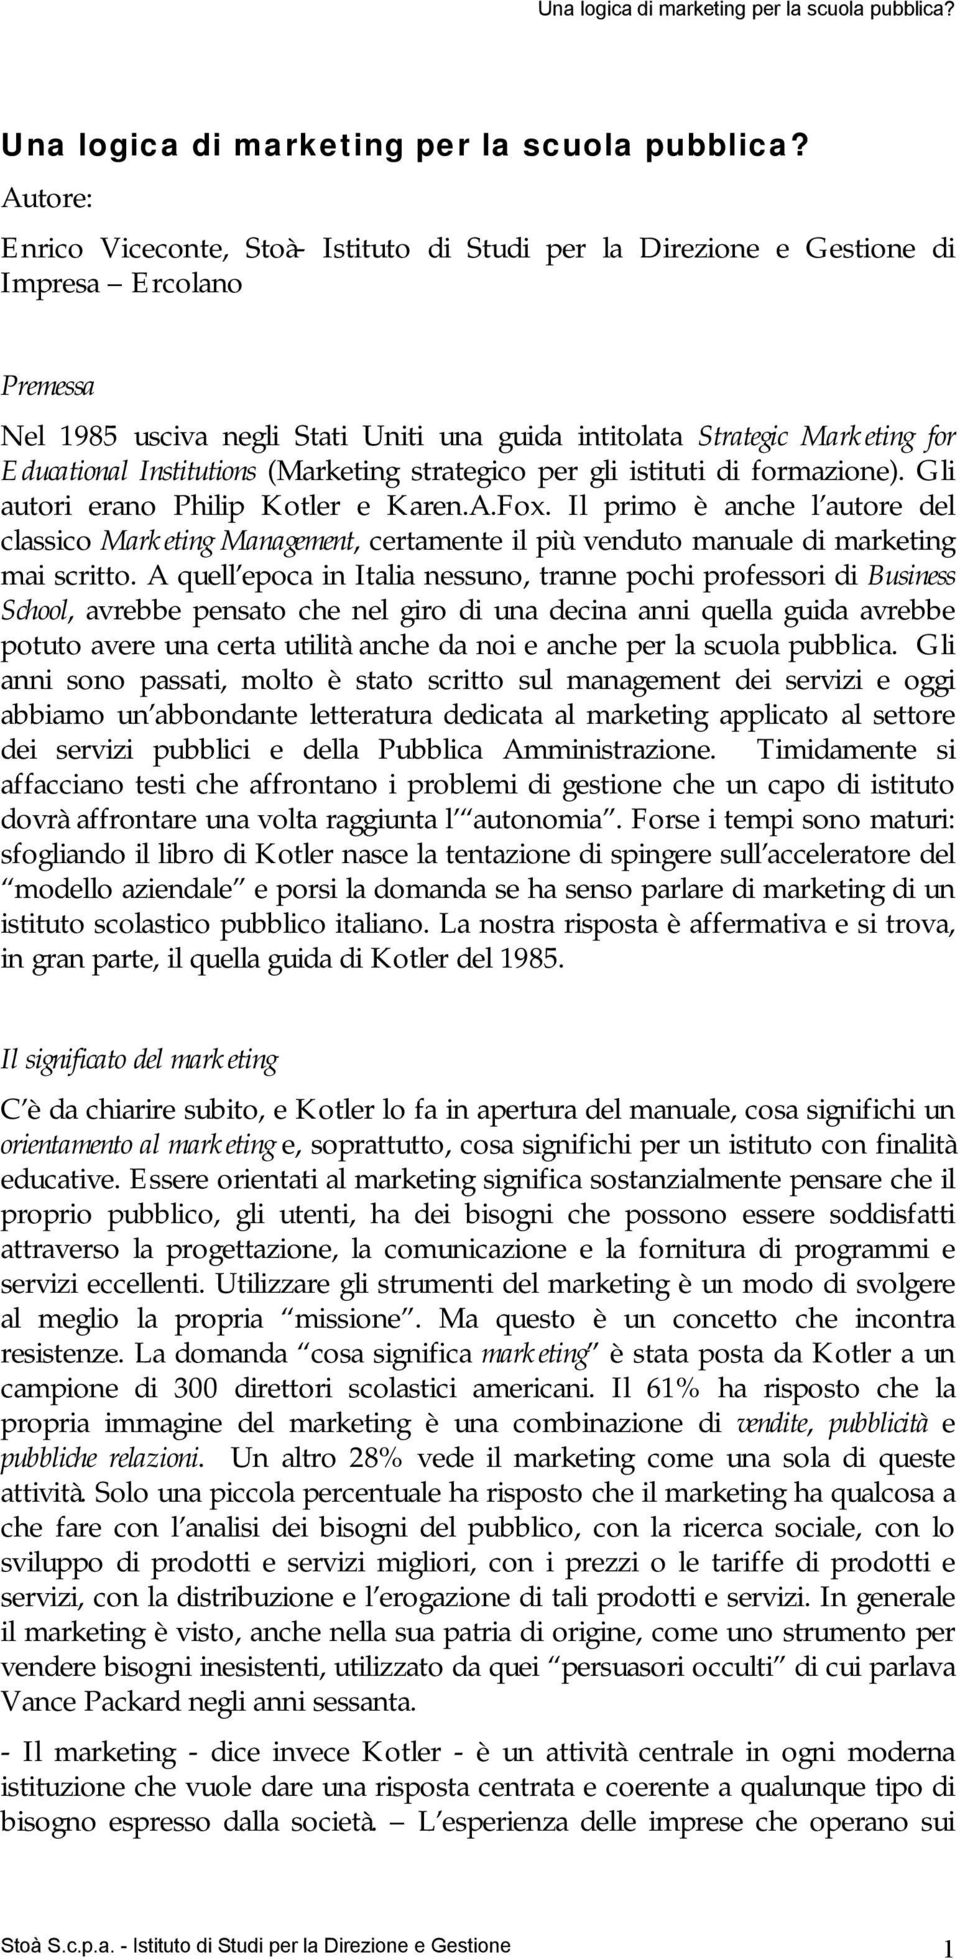 Institutions (Marketing strategico per gli istituti di formazione). Gli autori erano Philip Kotler e Karen.A.Fox.